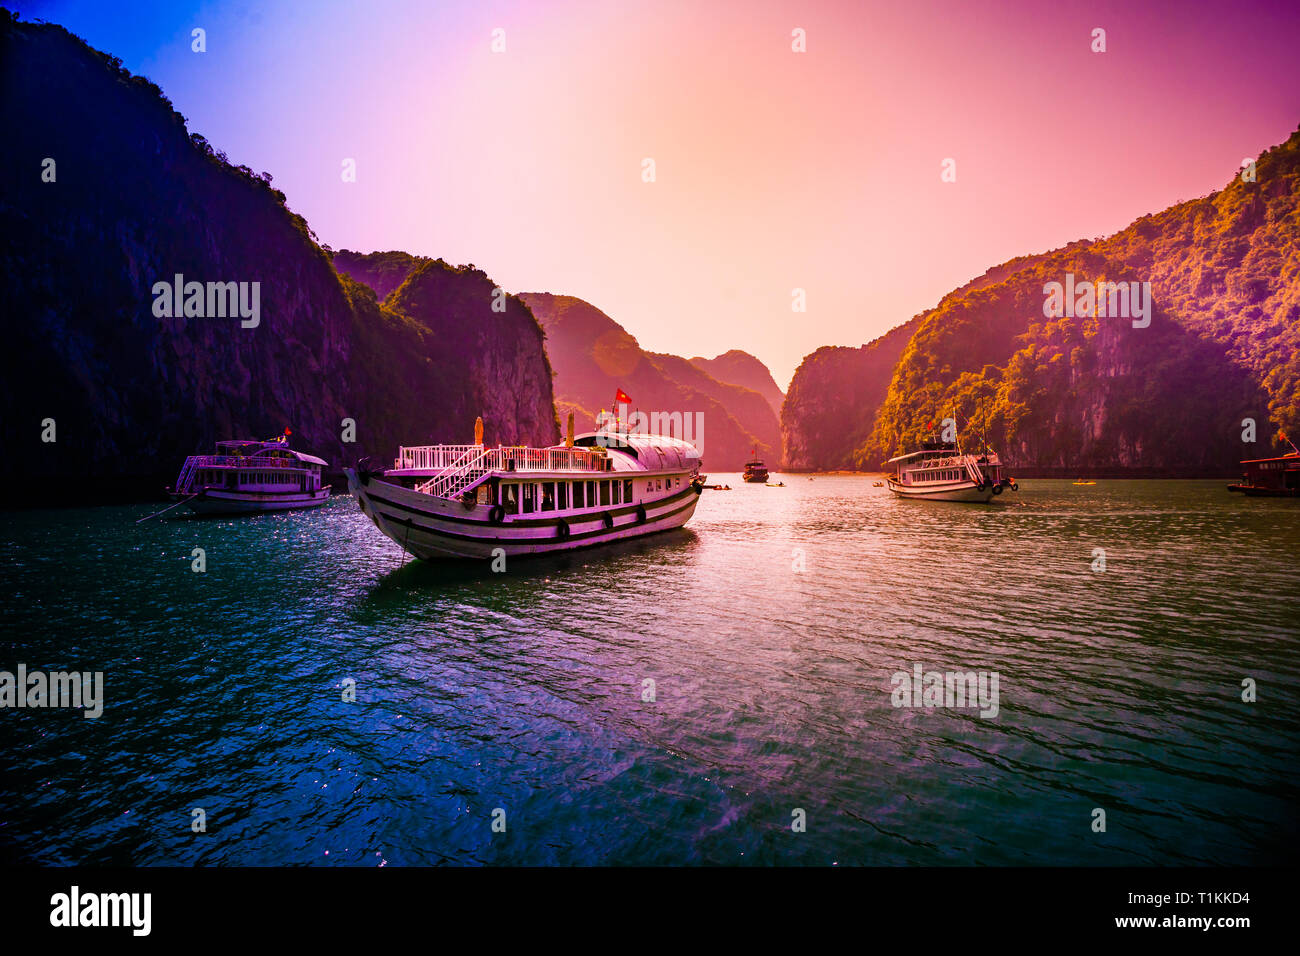 Sunset at Halong Bay Vietnam with tour boats in the foreground - Stock Image